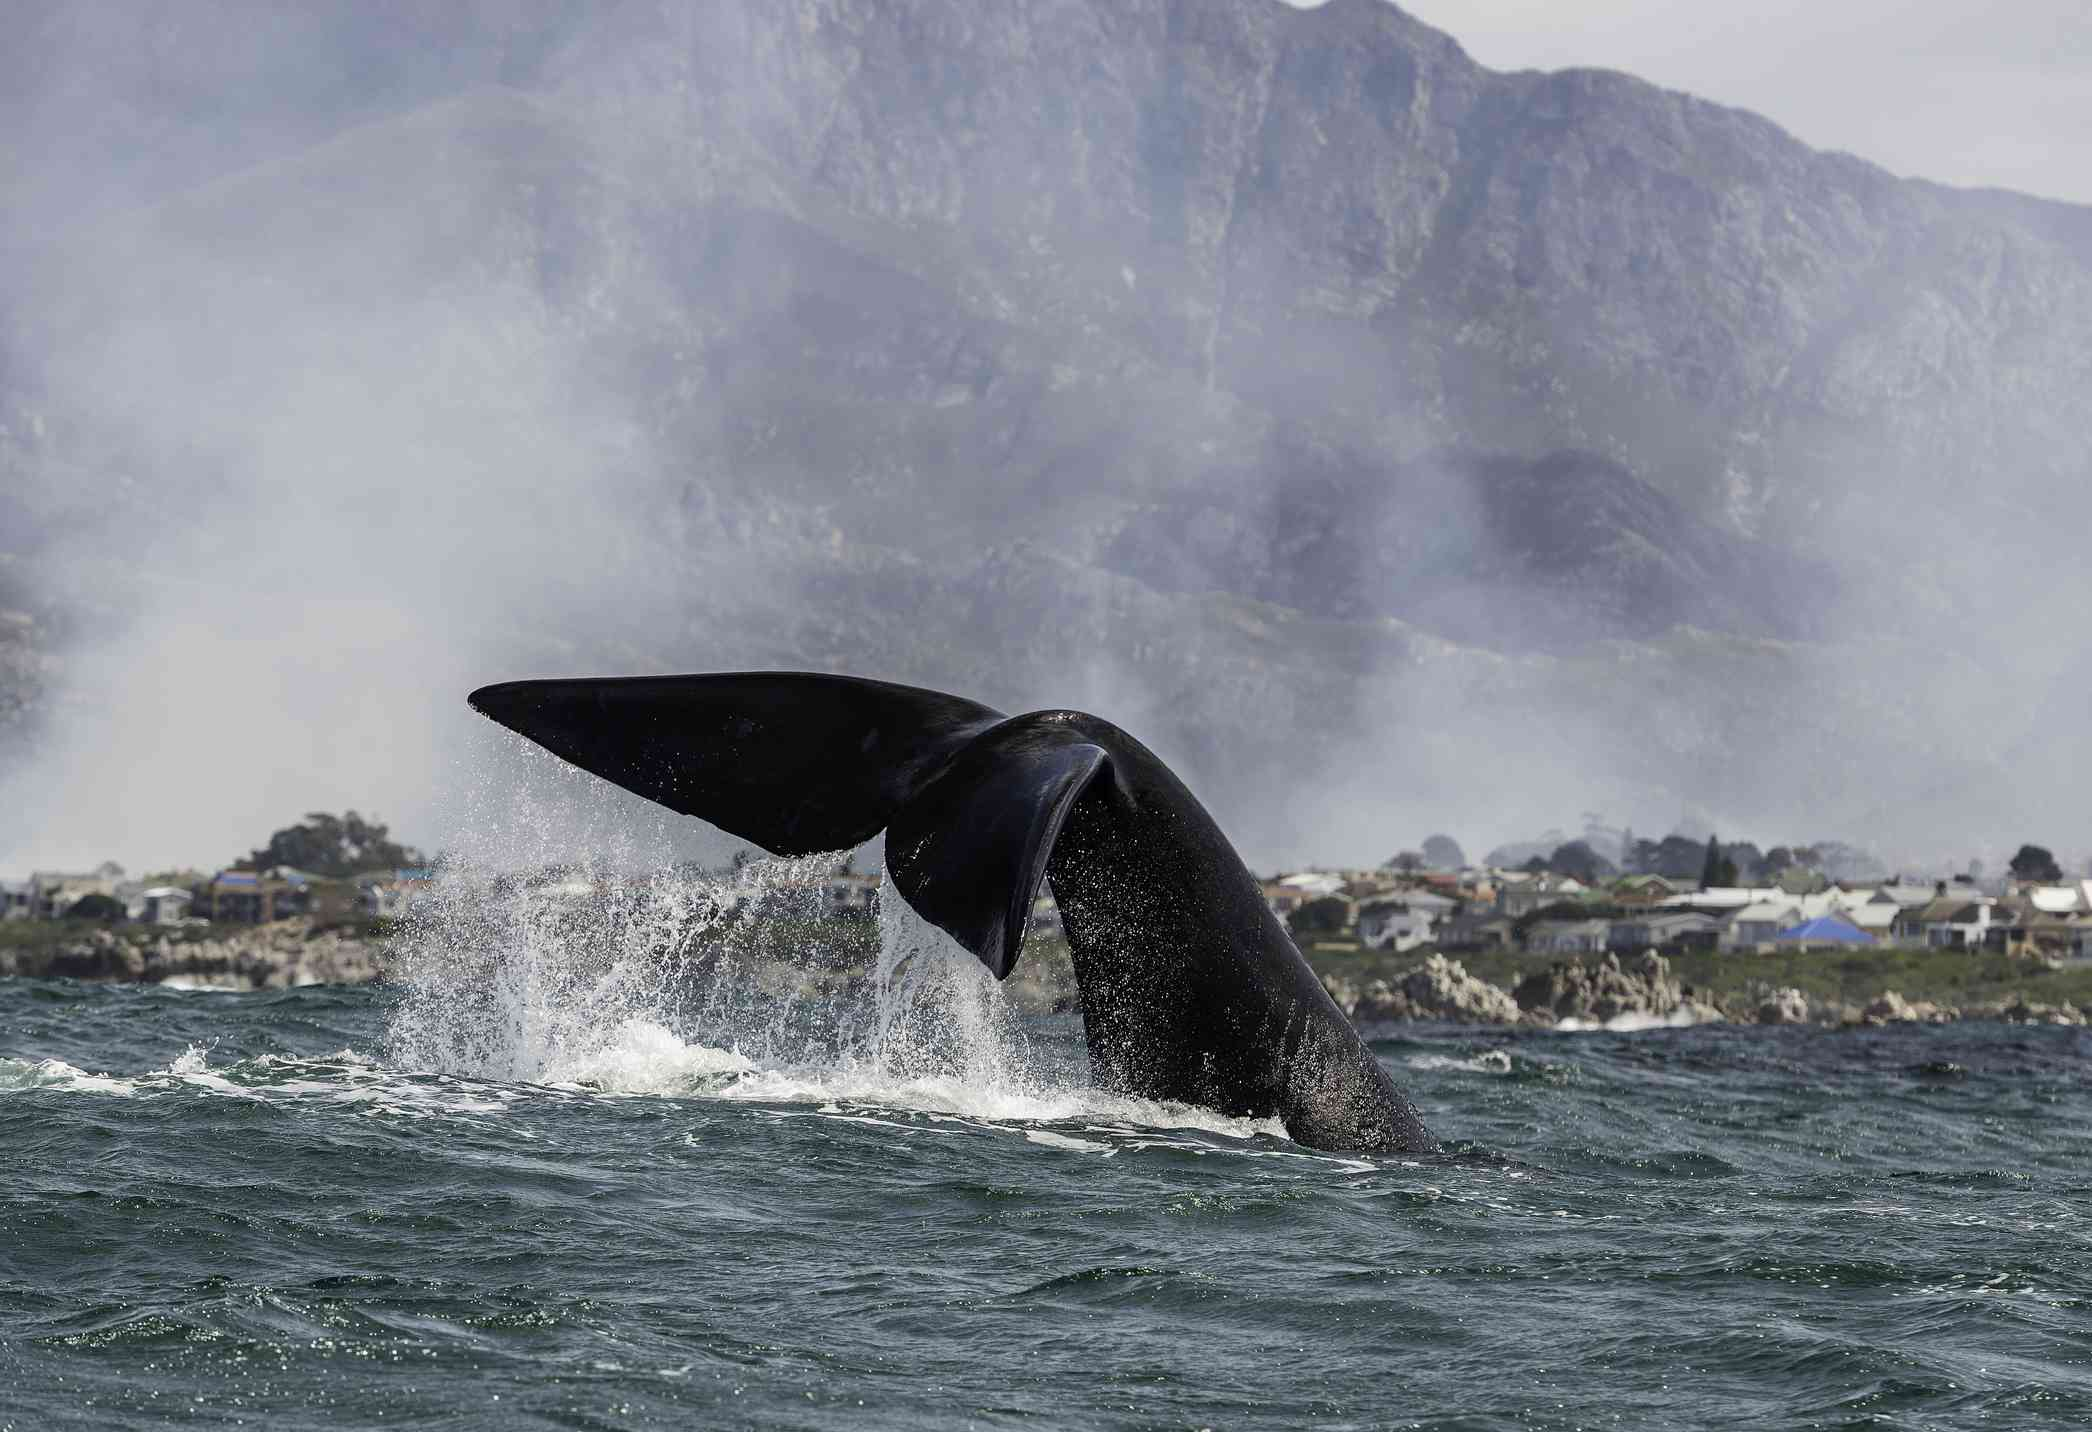 Southern right whale tail slapping at the water's surface as fires burn in the township in the background due to civil unrest, near Hermanus, South Africa.